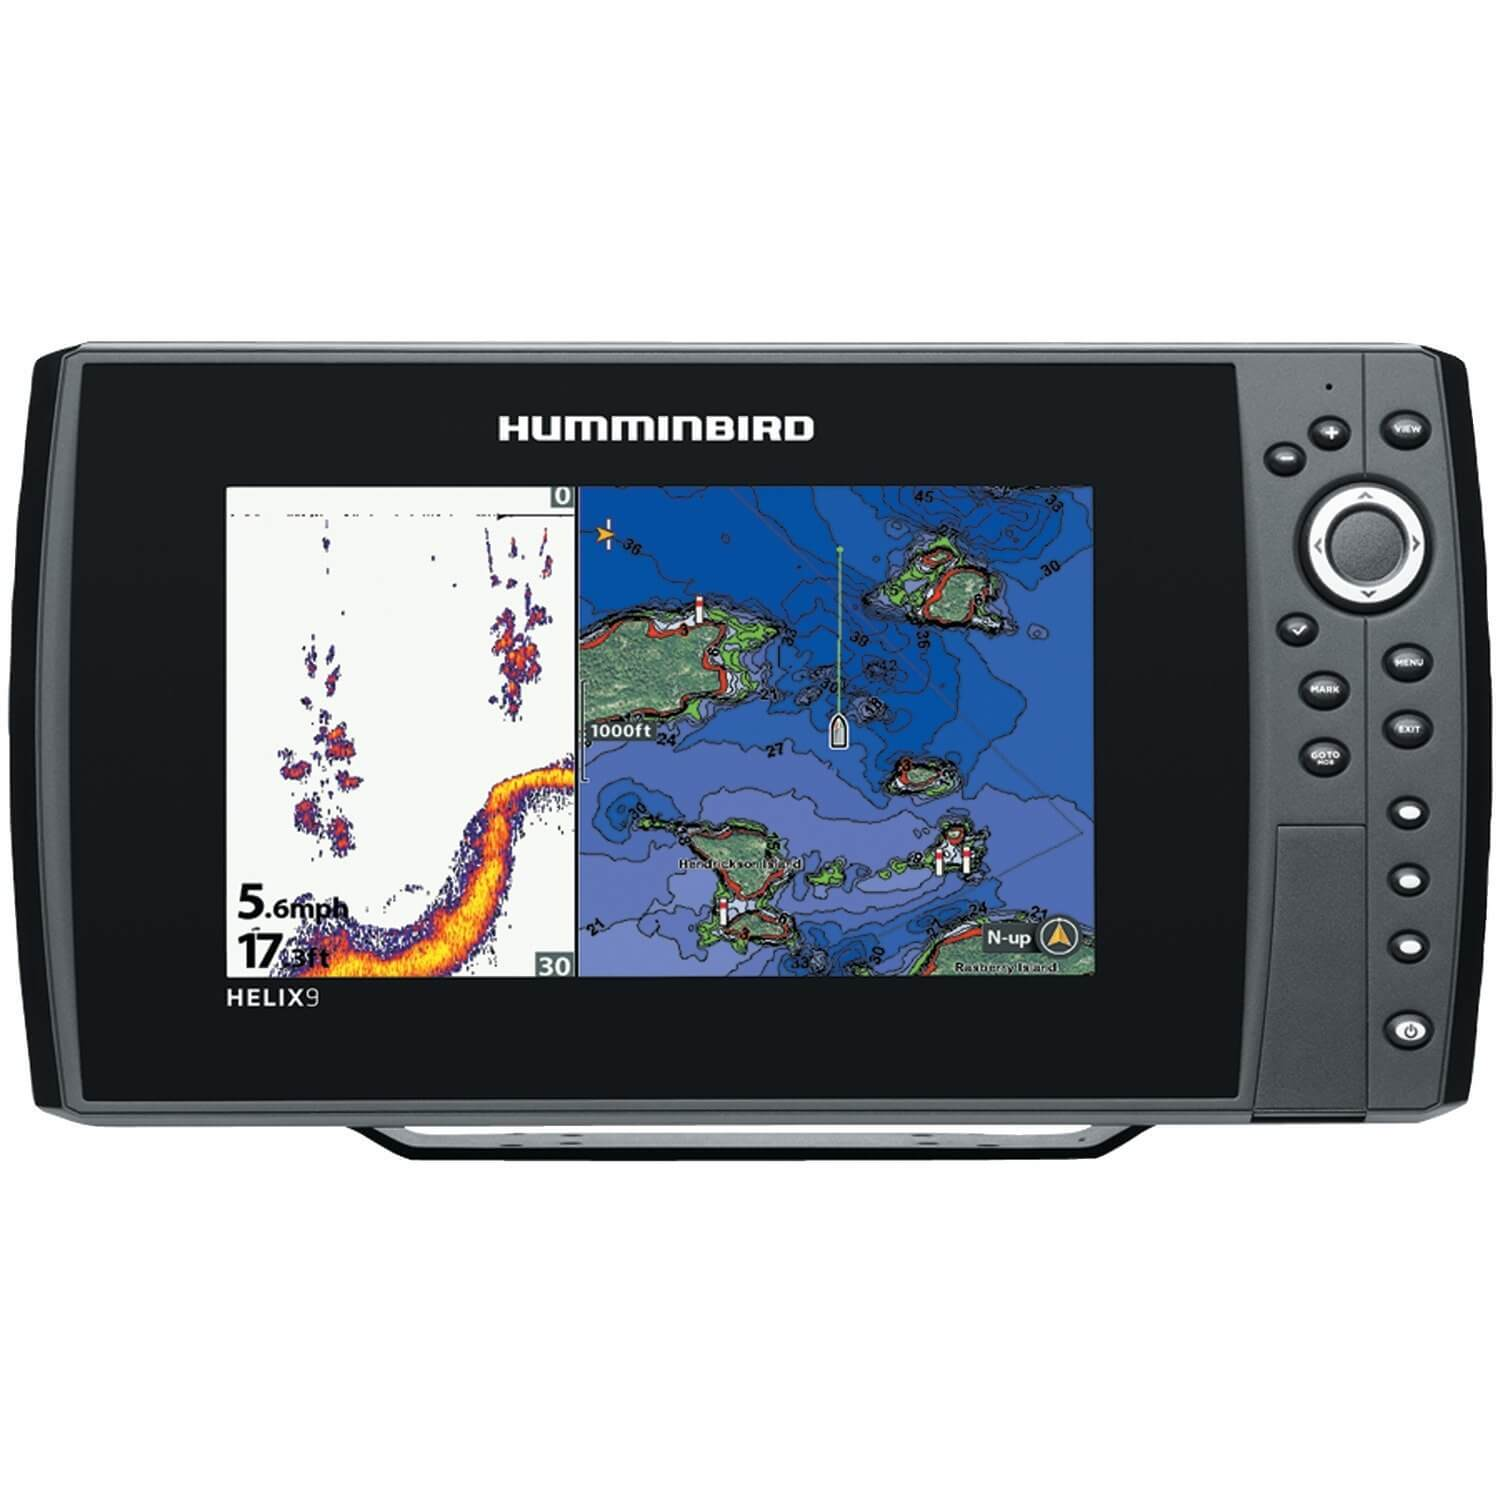 humminbird fish finder reviews - comprehensive guide, Fish Finder